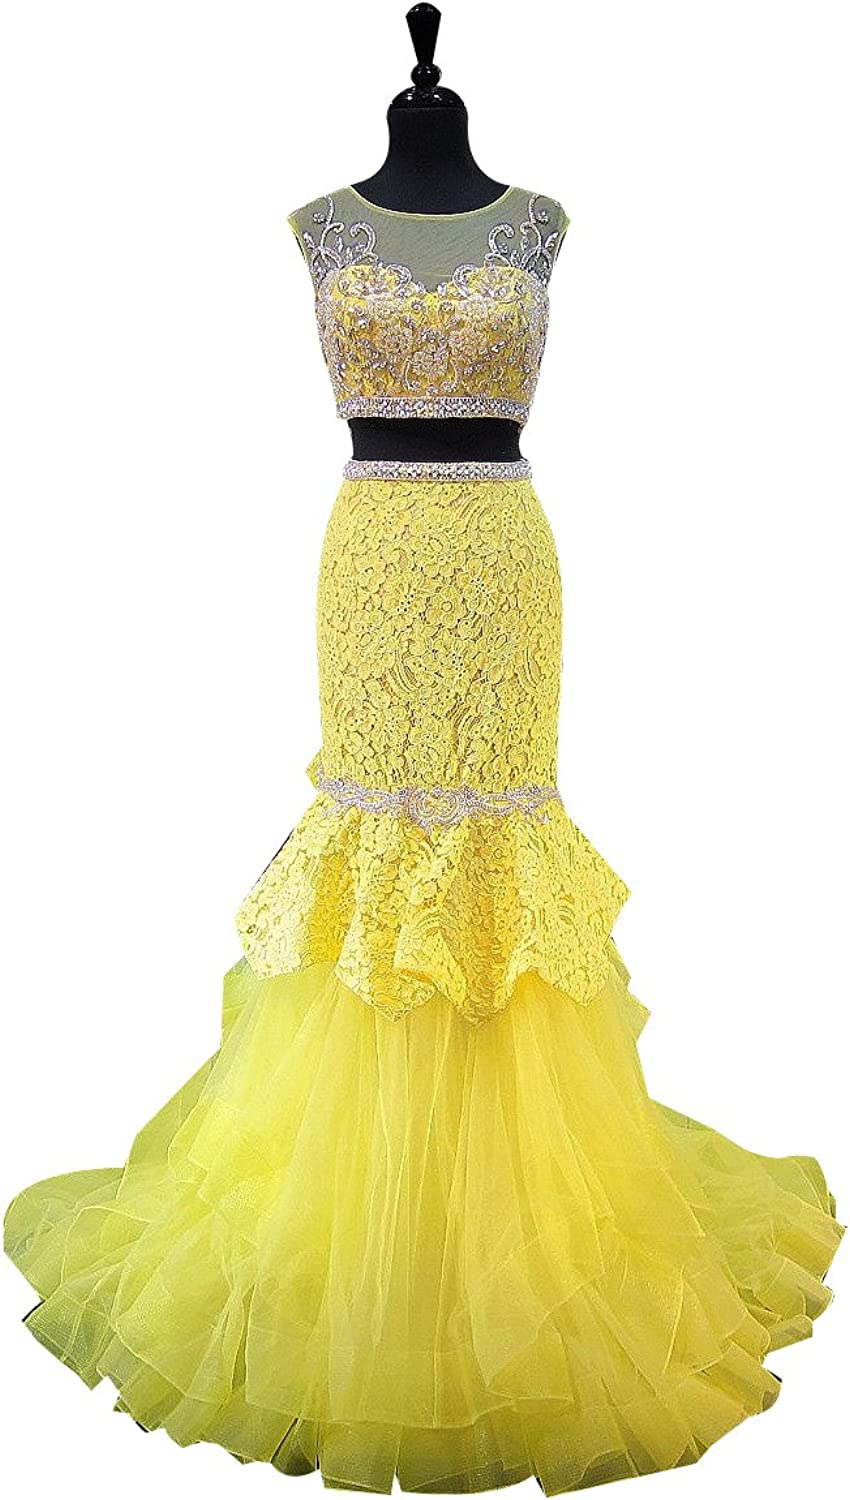 LISA.MOON Women's Jewel Mermaid Two Pieces Back Hole Tulle Lace Prom Dress